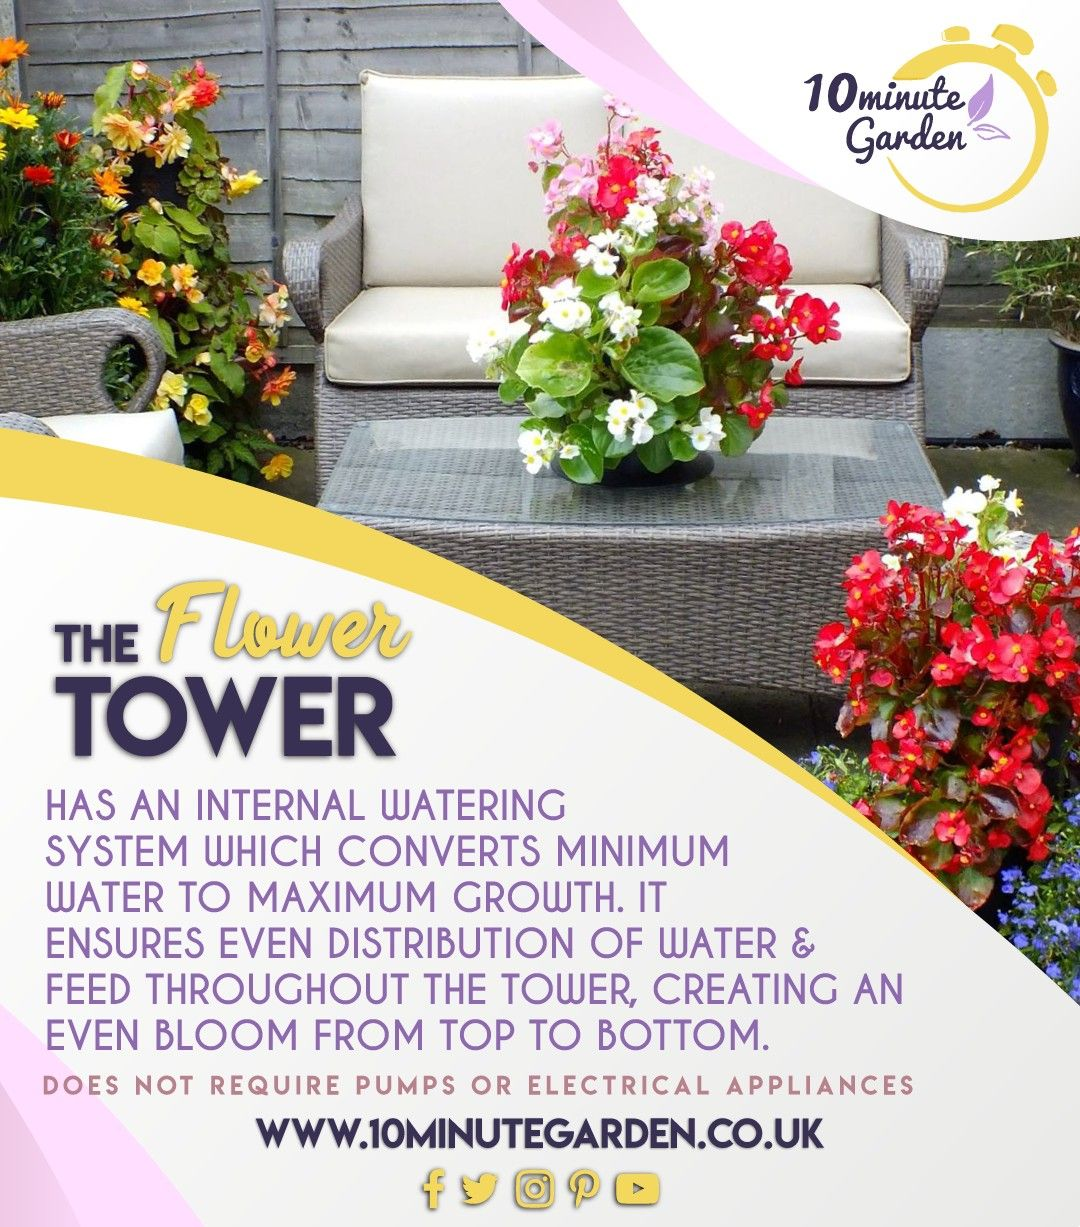 The flower tower has an internal watering system which